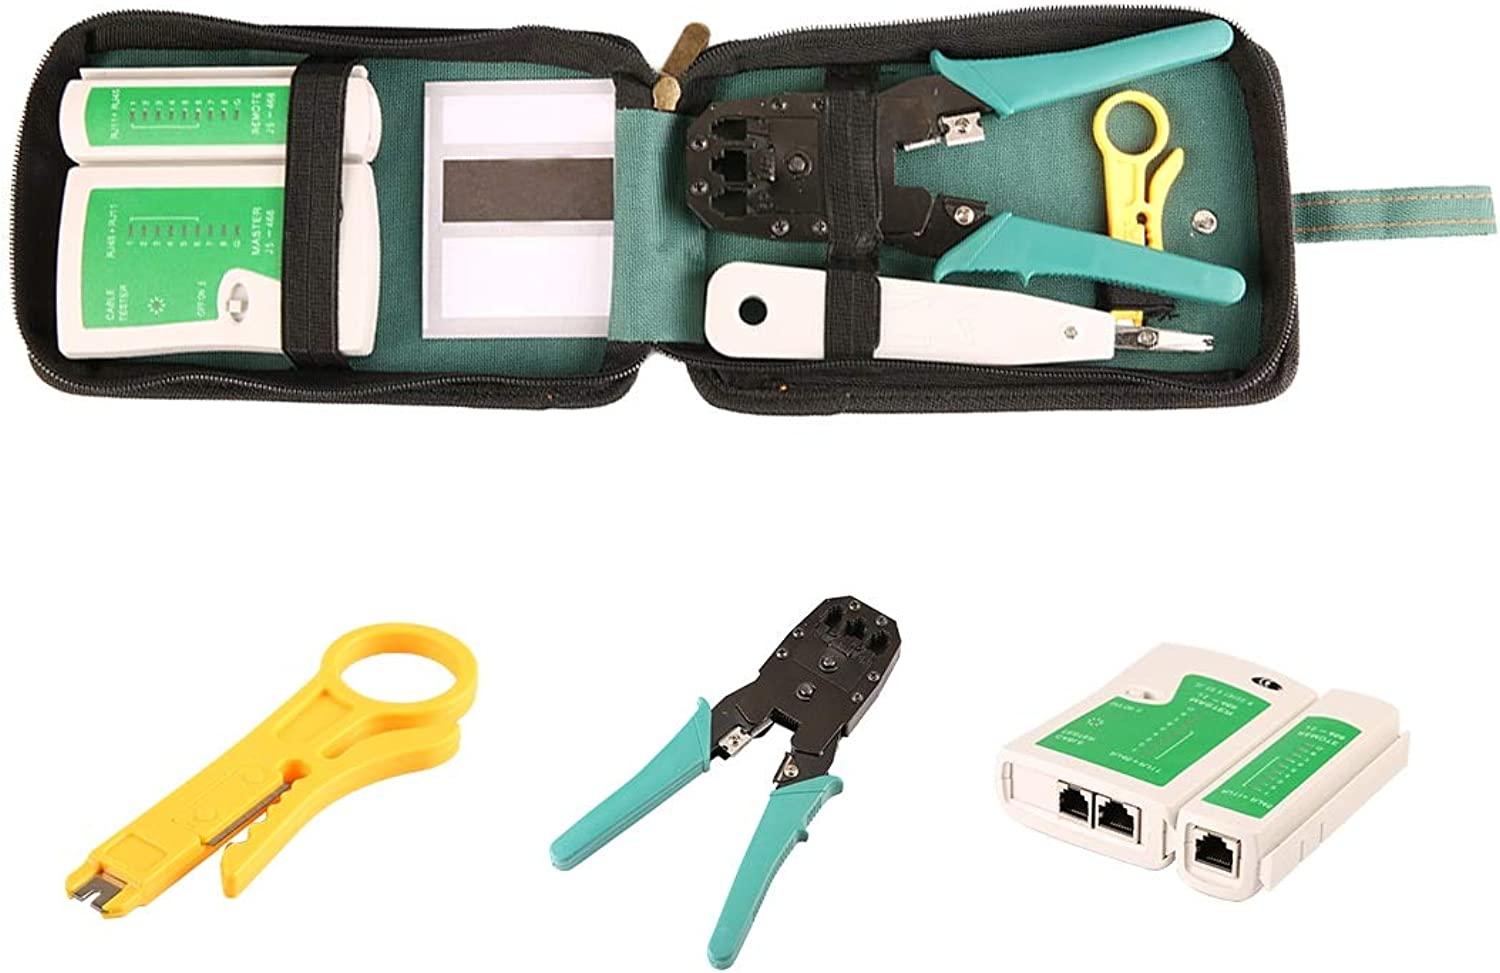 BeediY Professional Network Cable Tester LAN rj45 rj11 with Wire Cable Crimper Crimp PC Network Hand Tools Herramientas